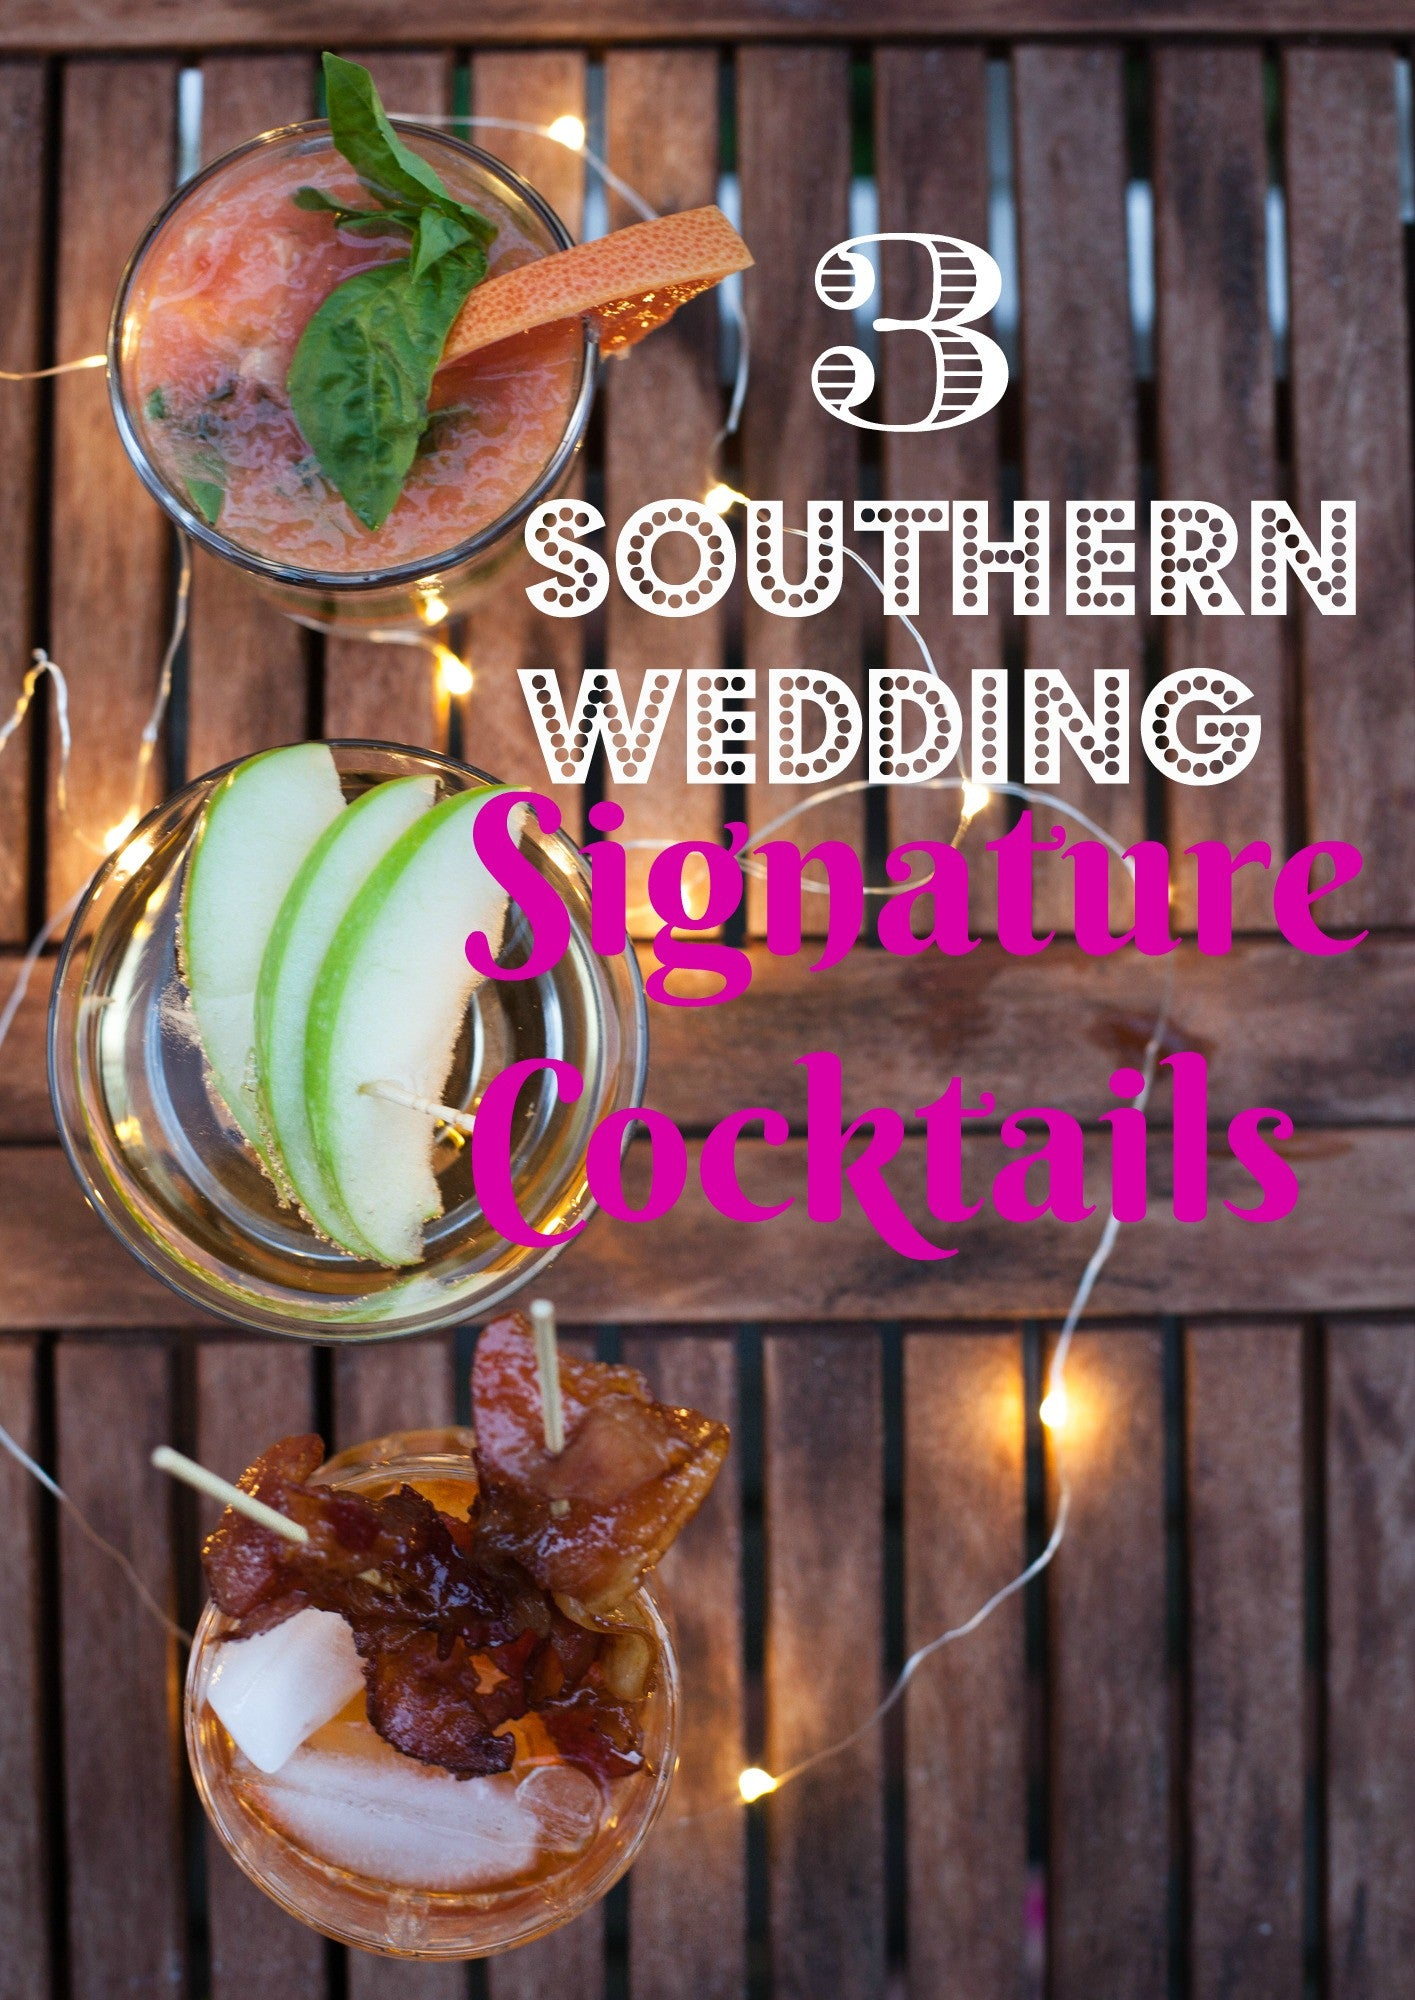 3 Southern Wedding Signature Cocktails